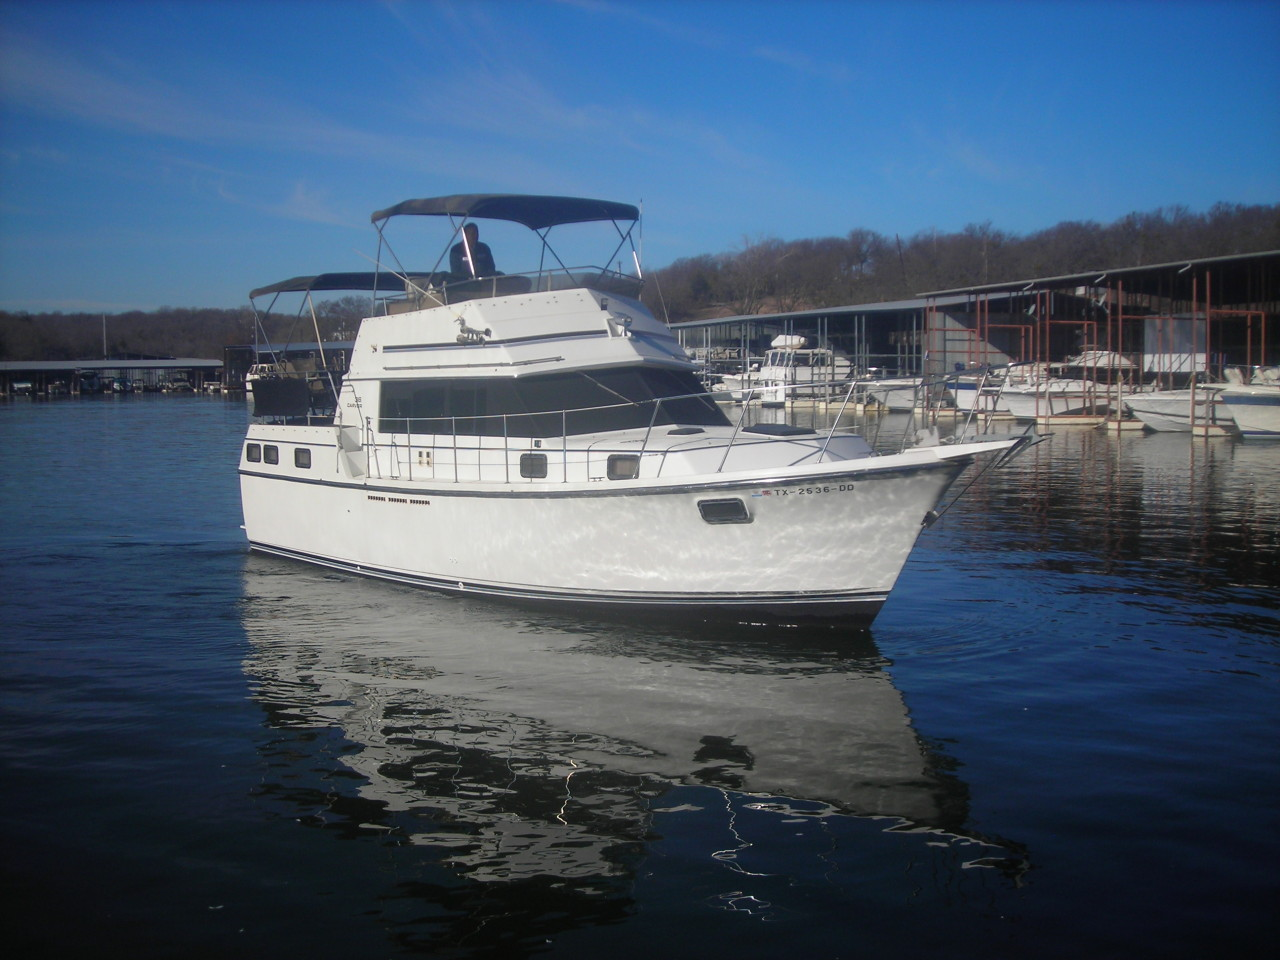 http://eisenhoweryachtclub.com/wp-content/uploads/new-boat-pictures-007.jpg